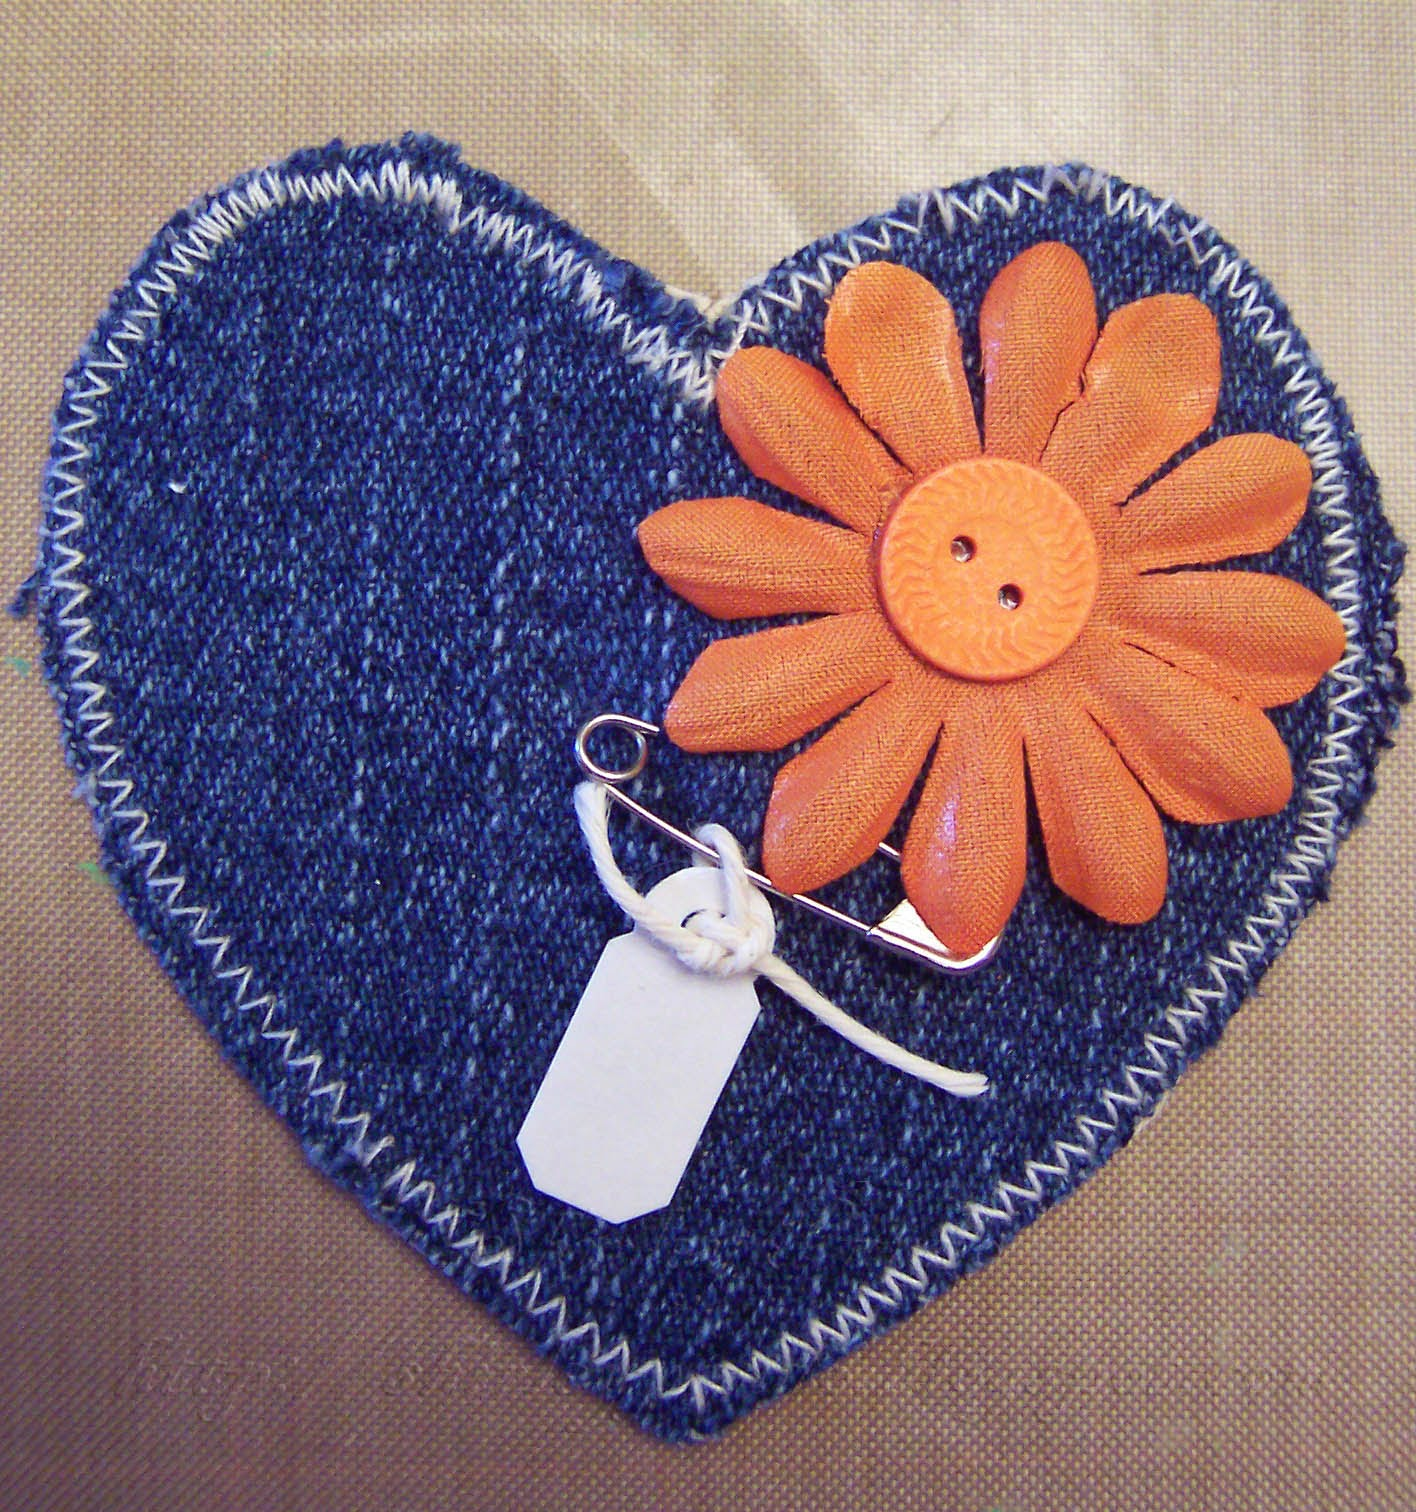 Blue Jean Heart Embellishment